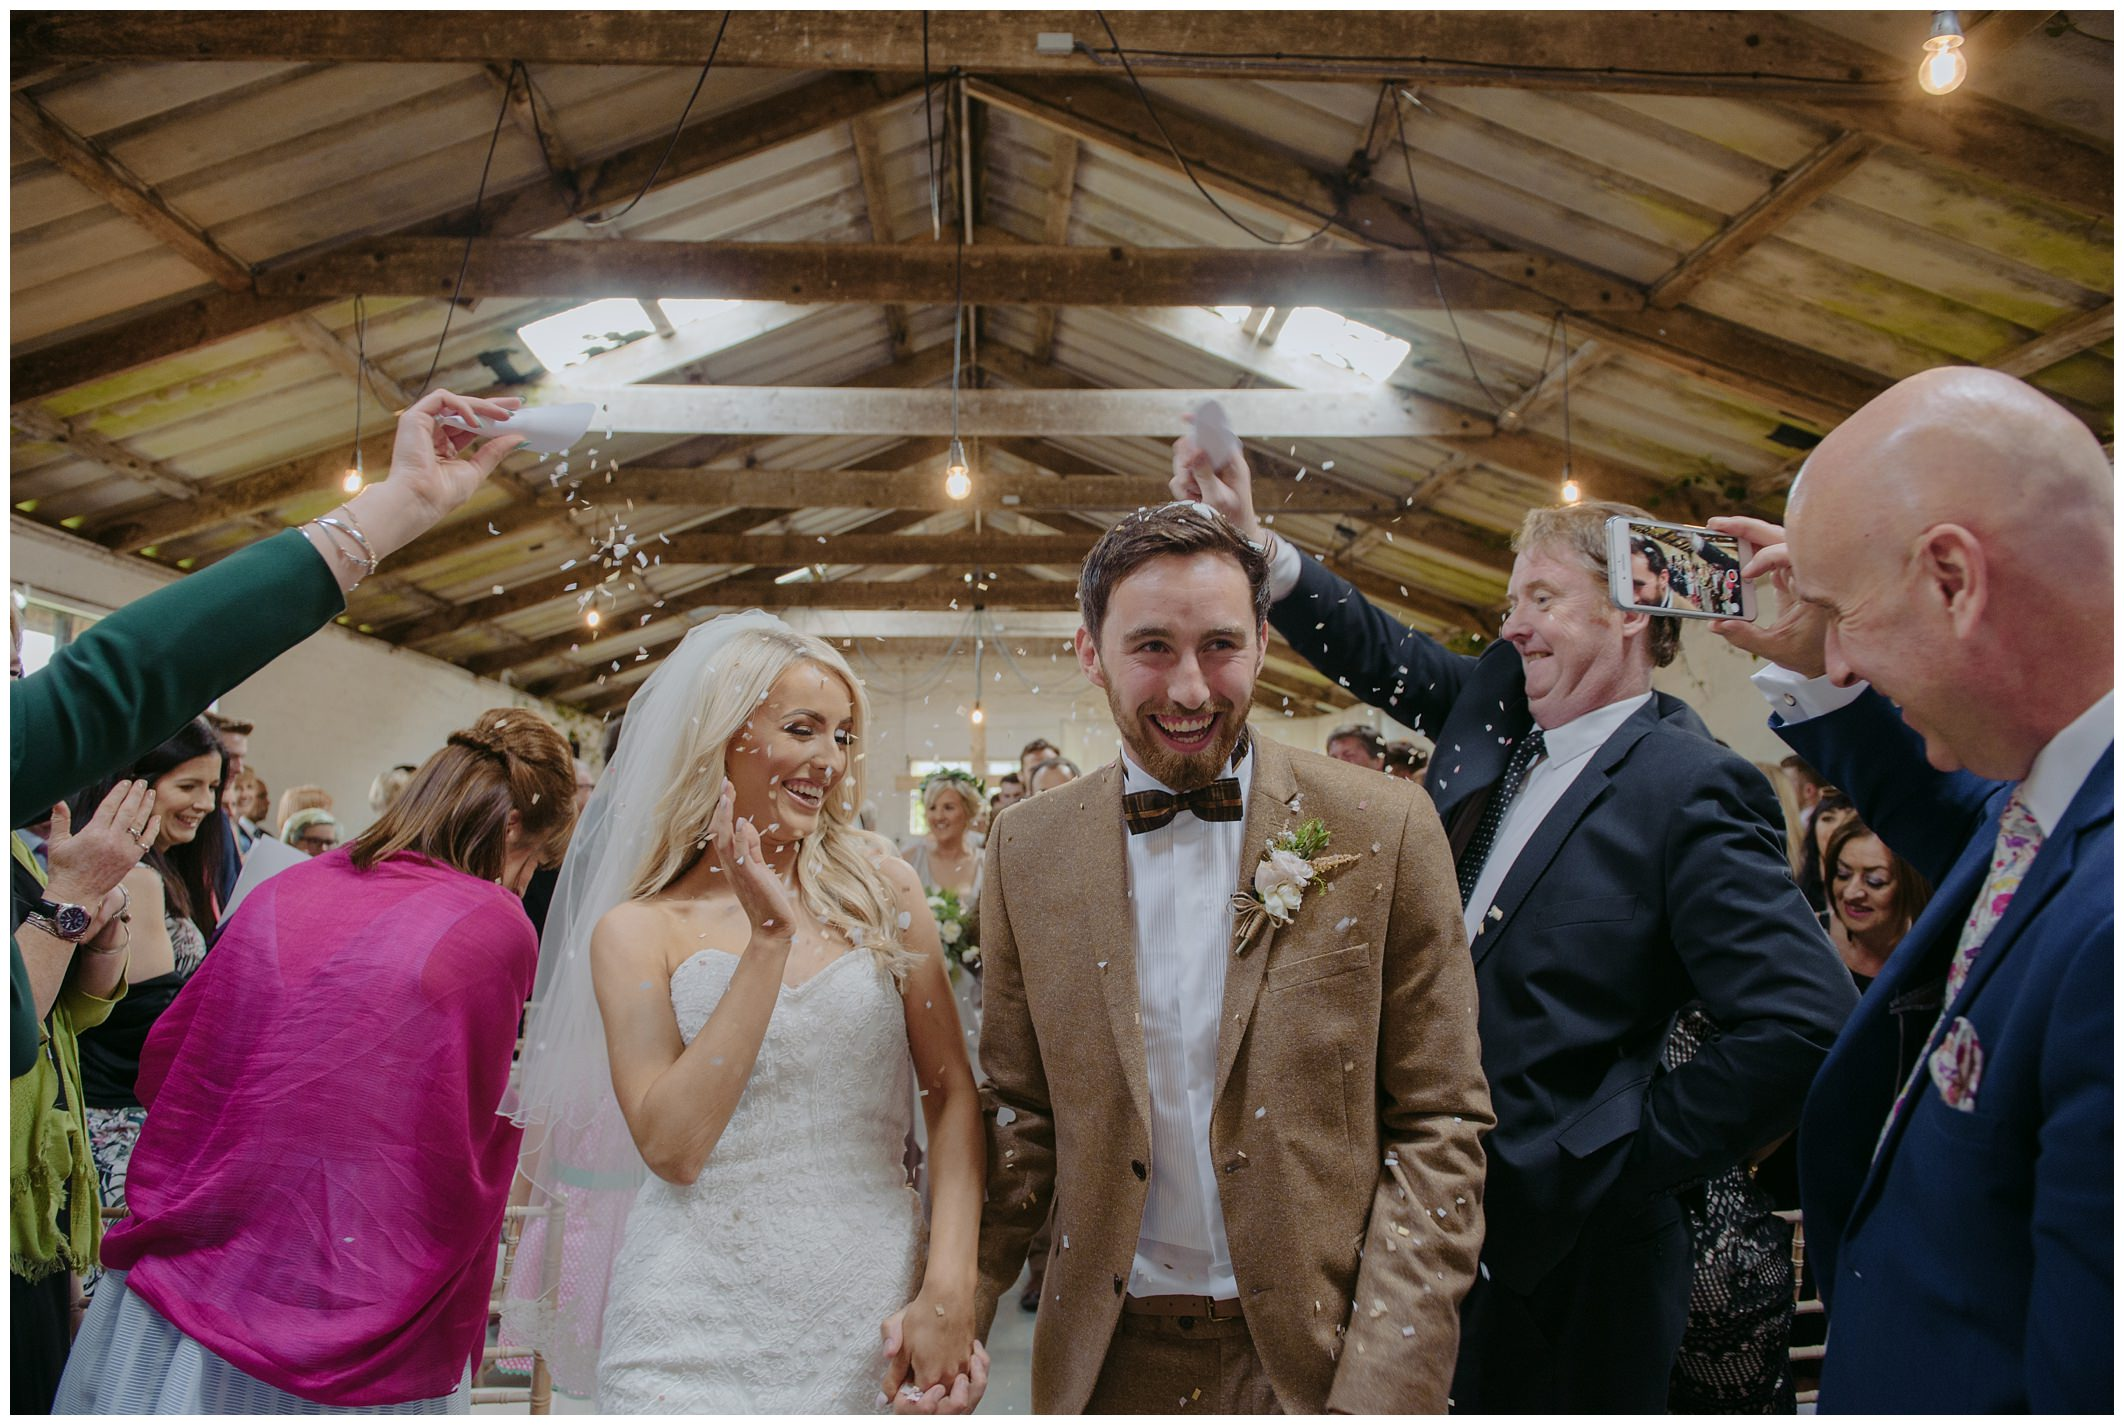 tara_neil_the_mill_alternative_quirky_wedding_jude_browne_photography_0106.jpg